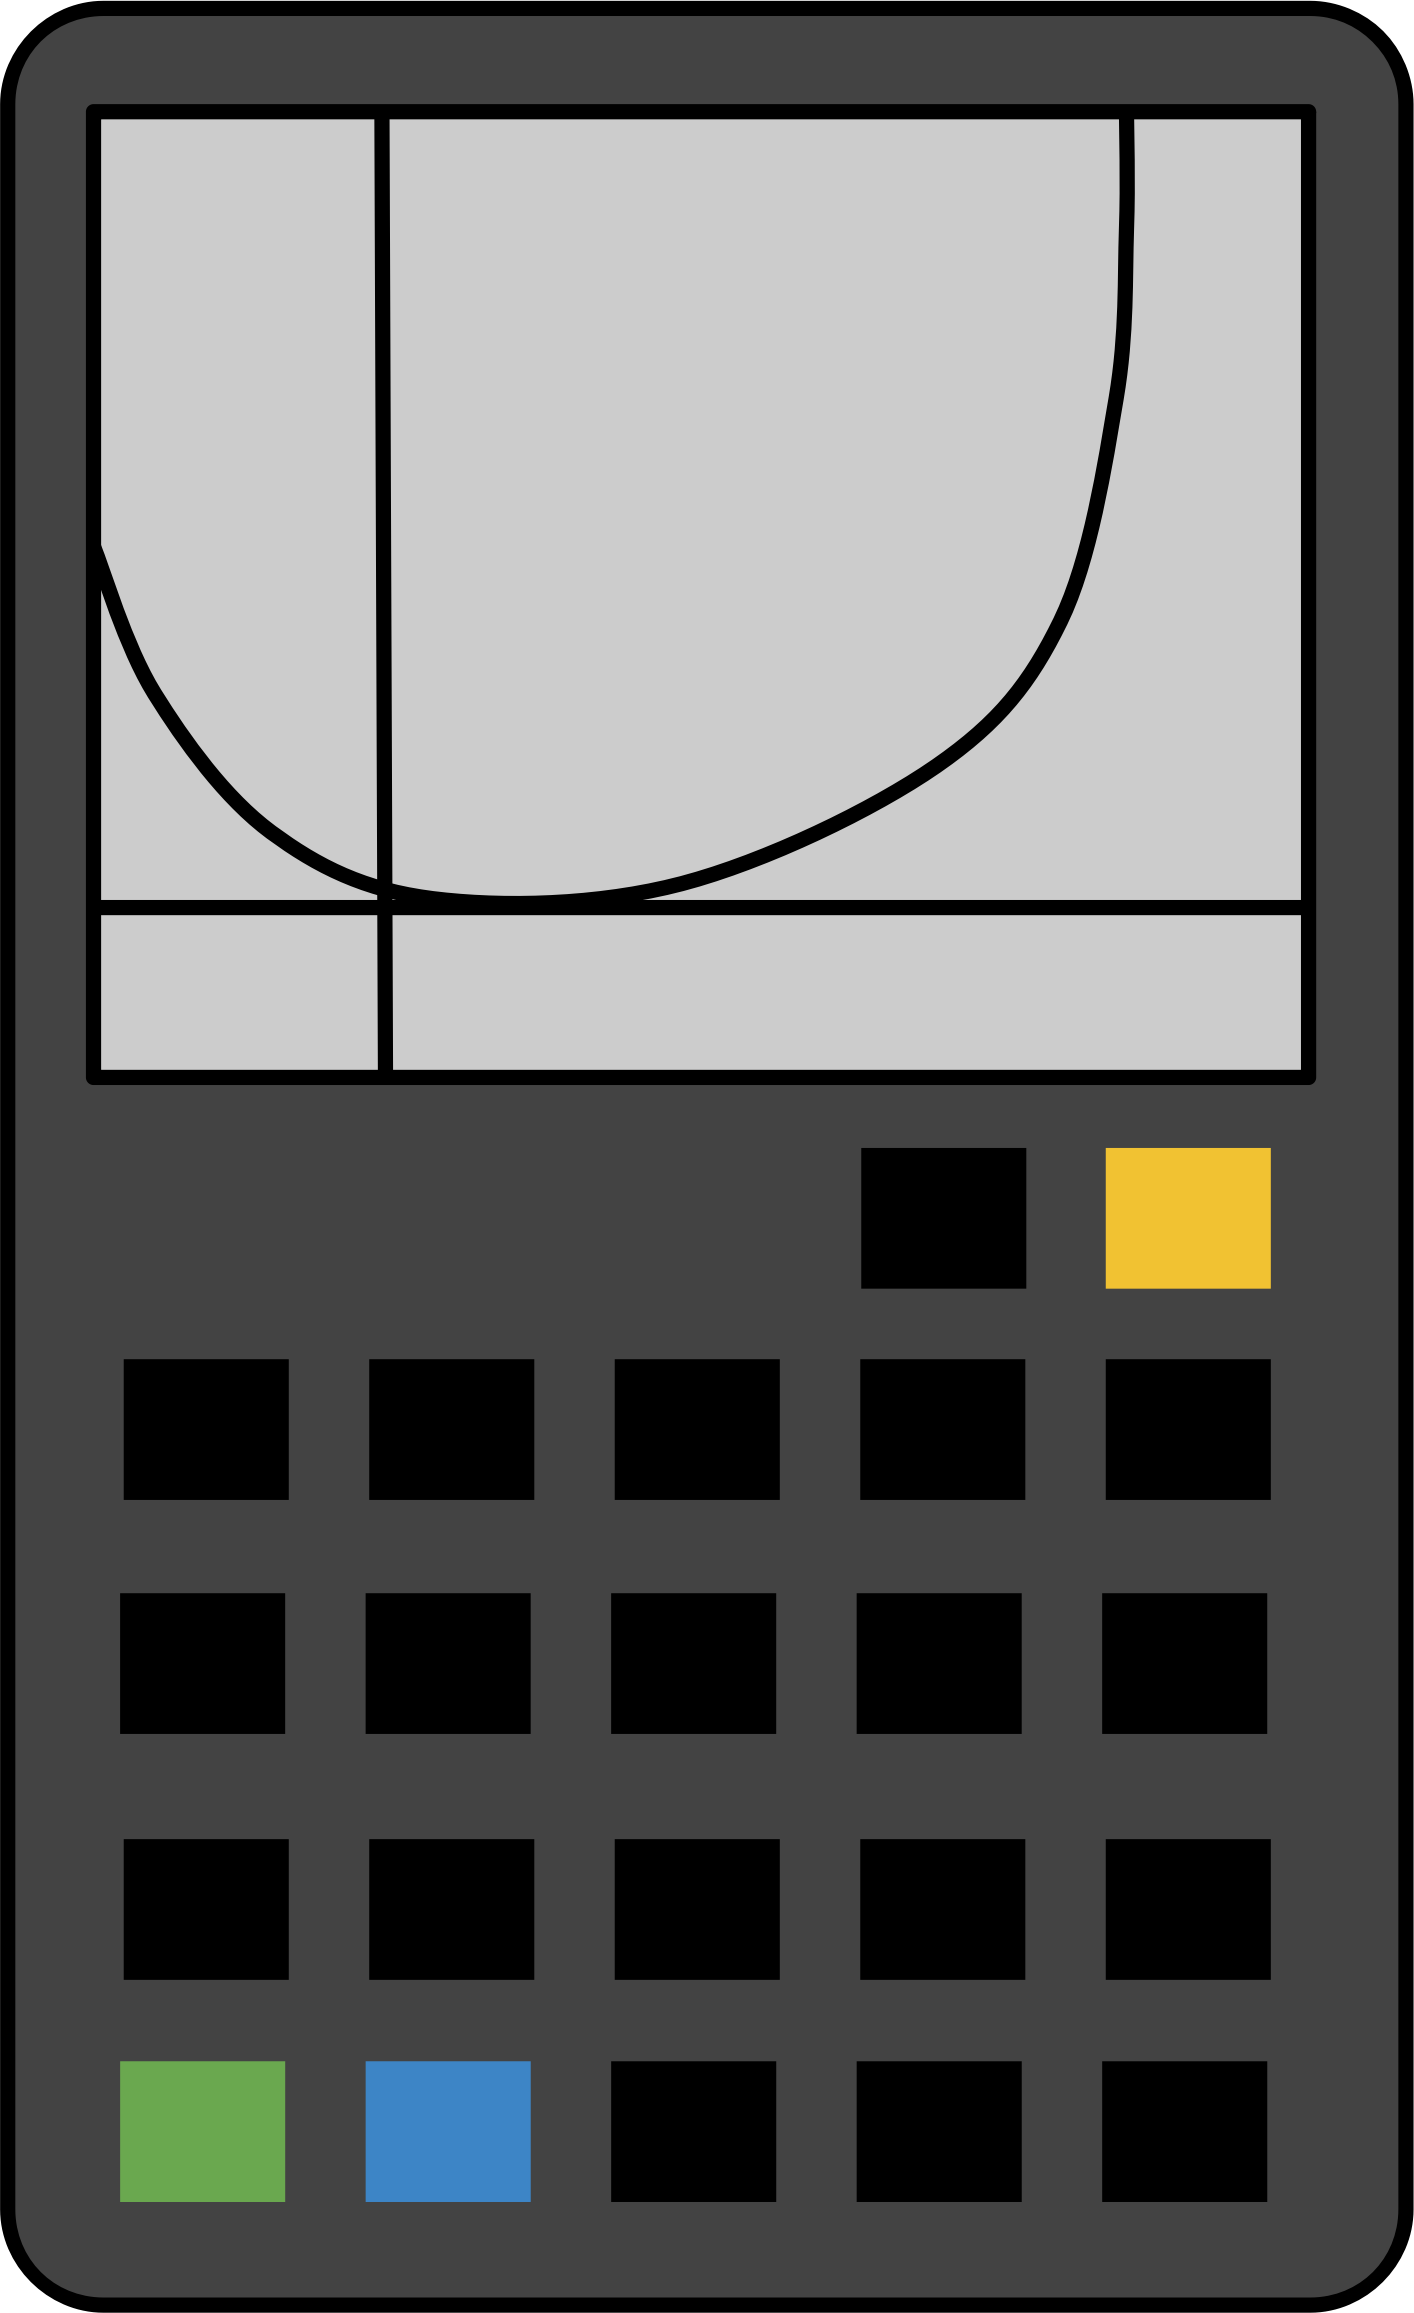 Big image png. Calculator clipart graphing